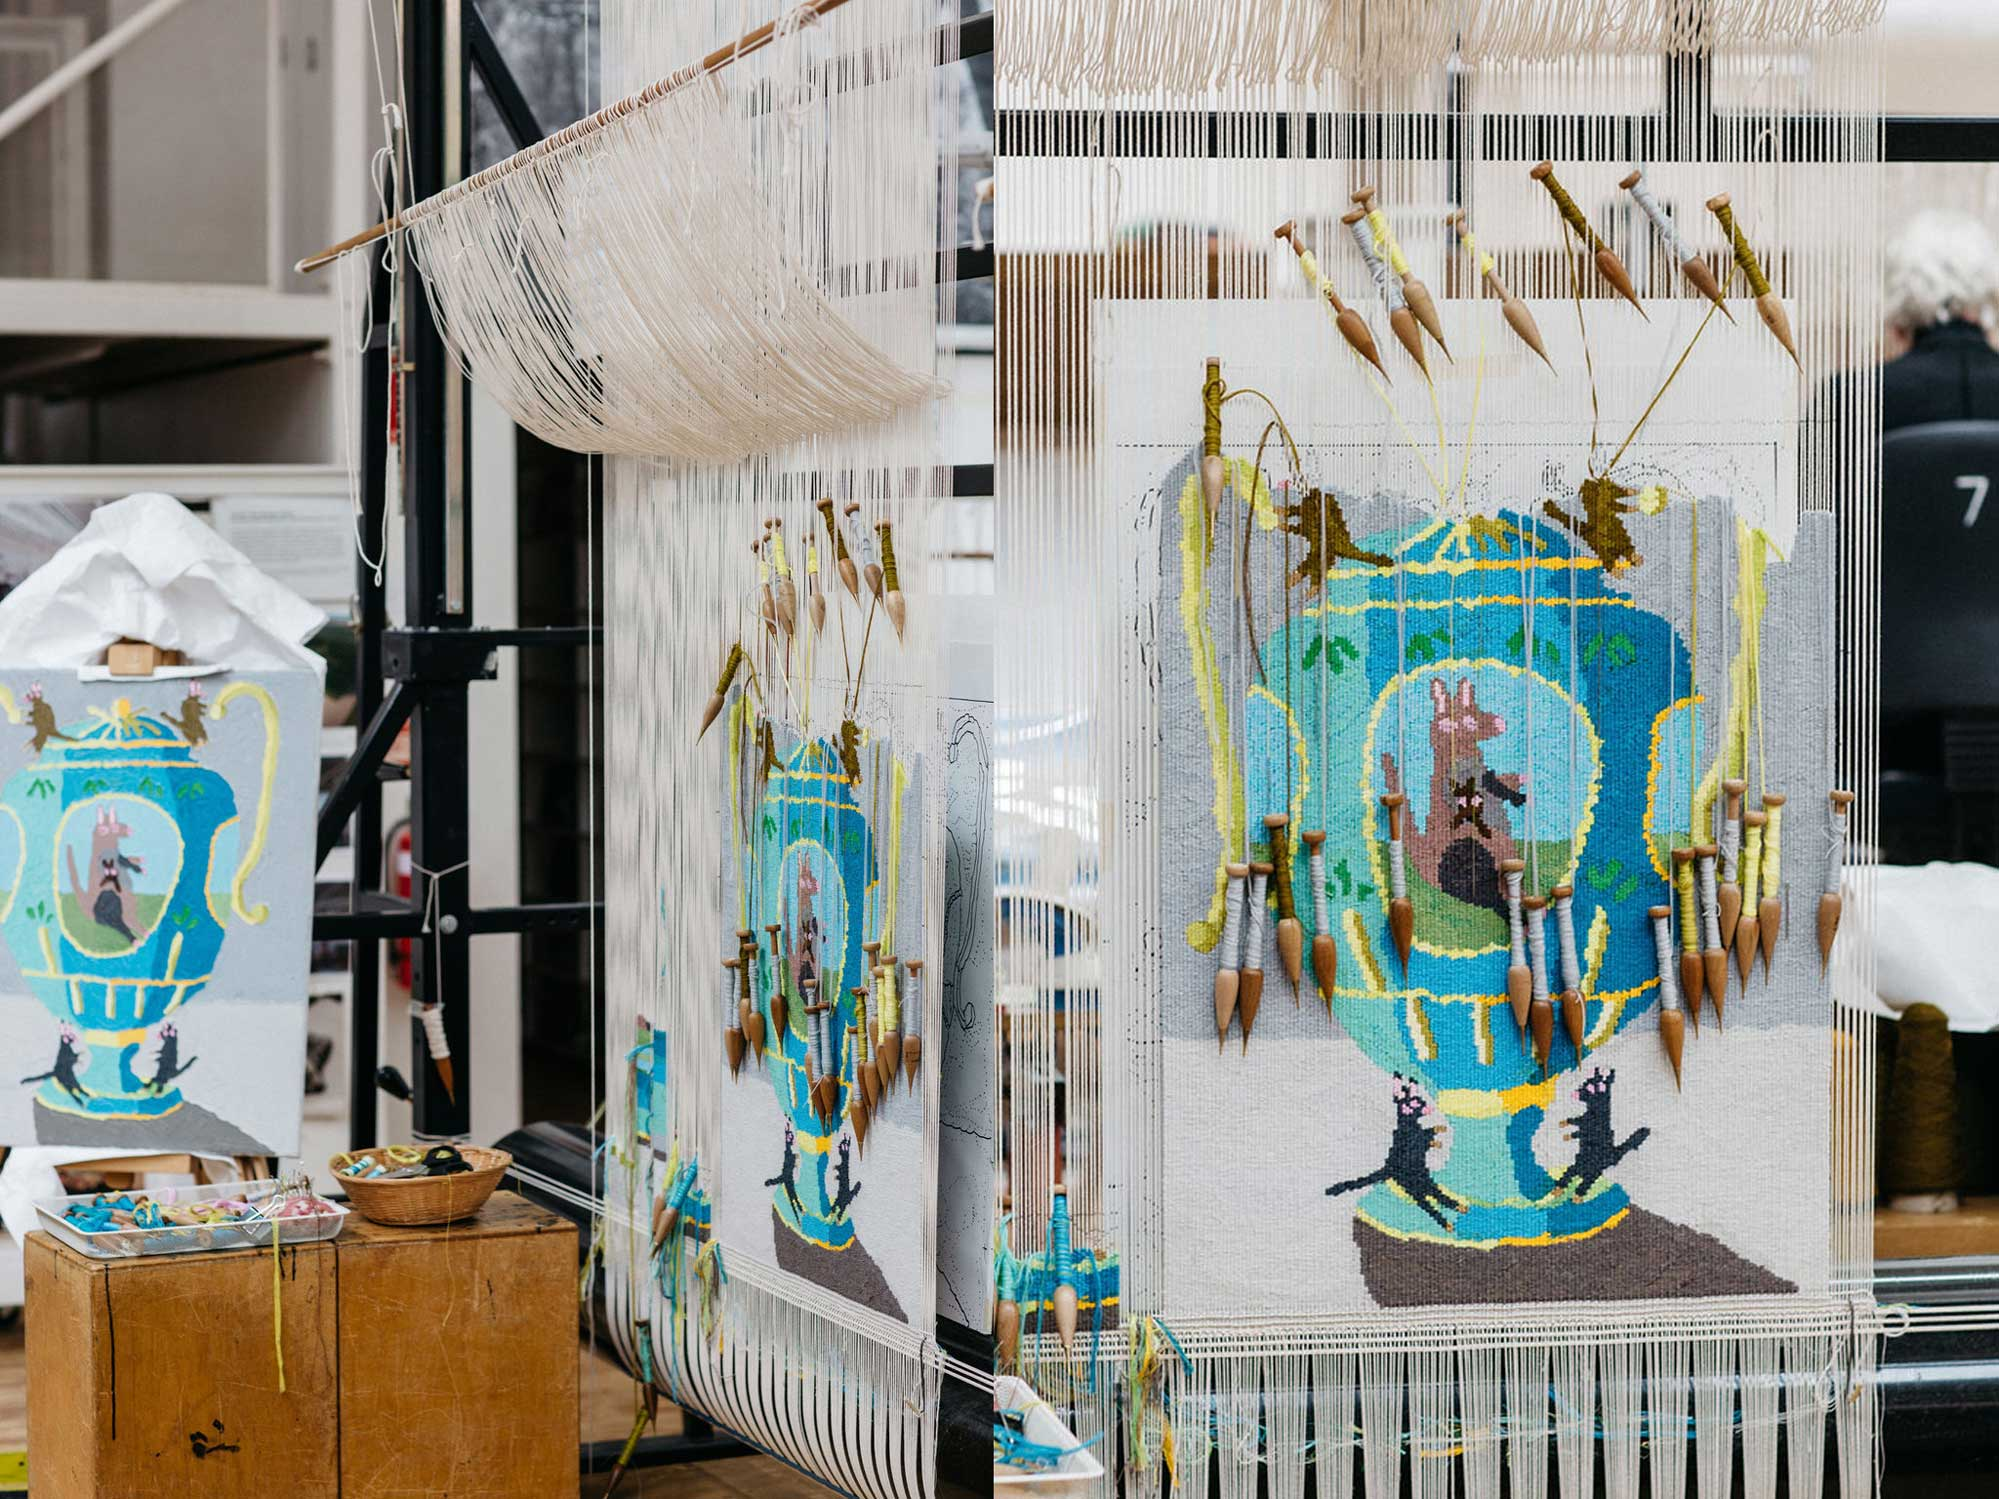 Tapestry in progress: 'big kangaroo urn', 2021, designed by Troy Emery, woven by Emma Sulzer. Images courtesy of Marie- Luise Skibbe.